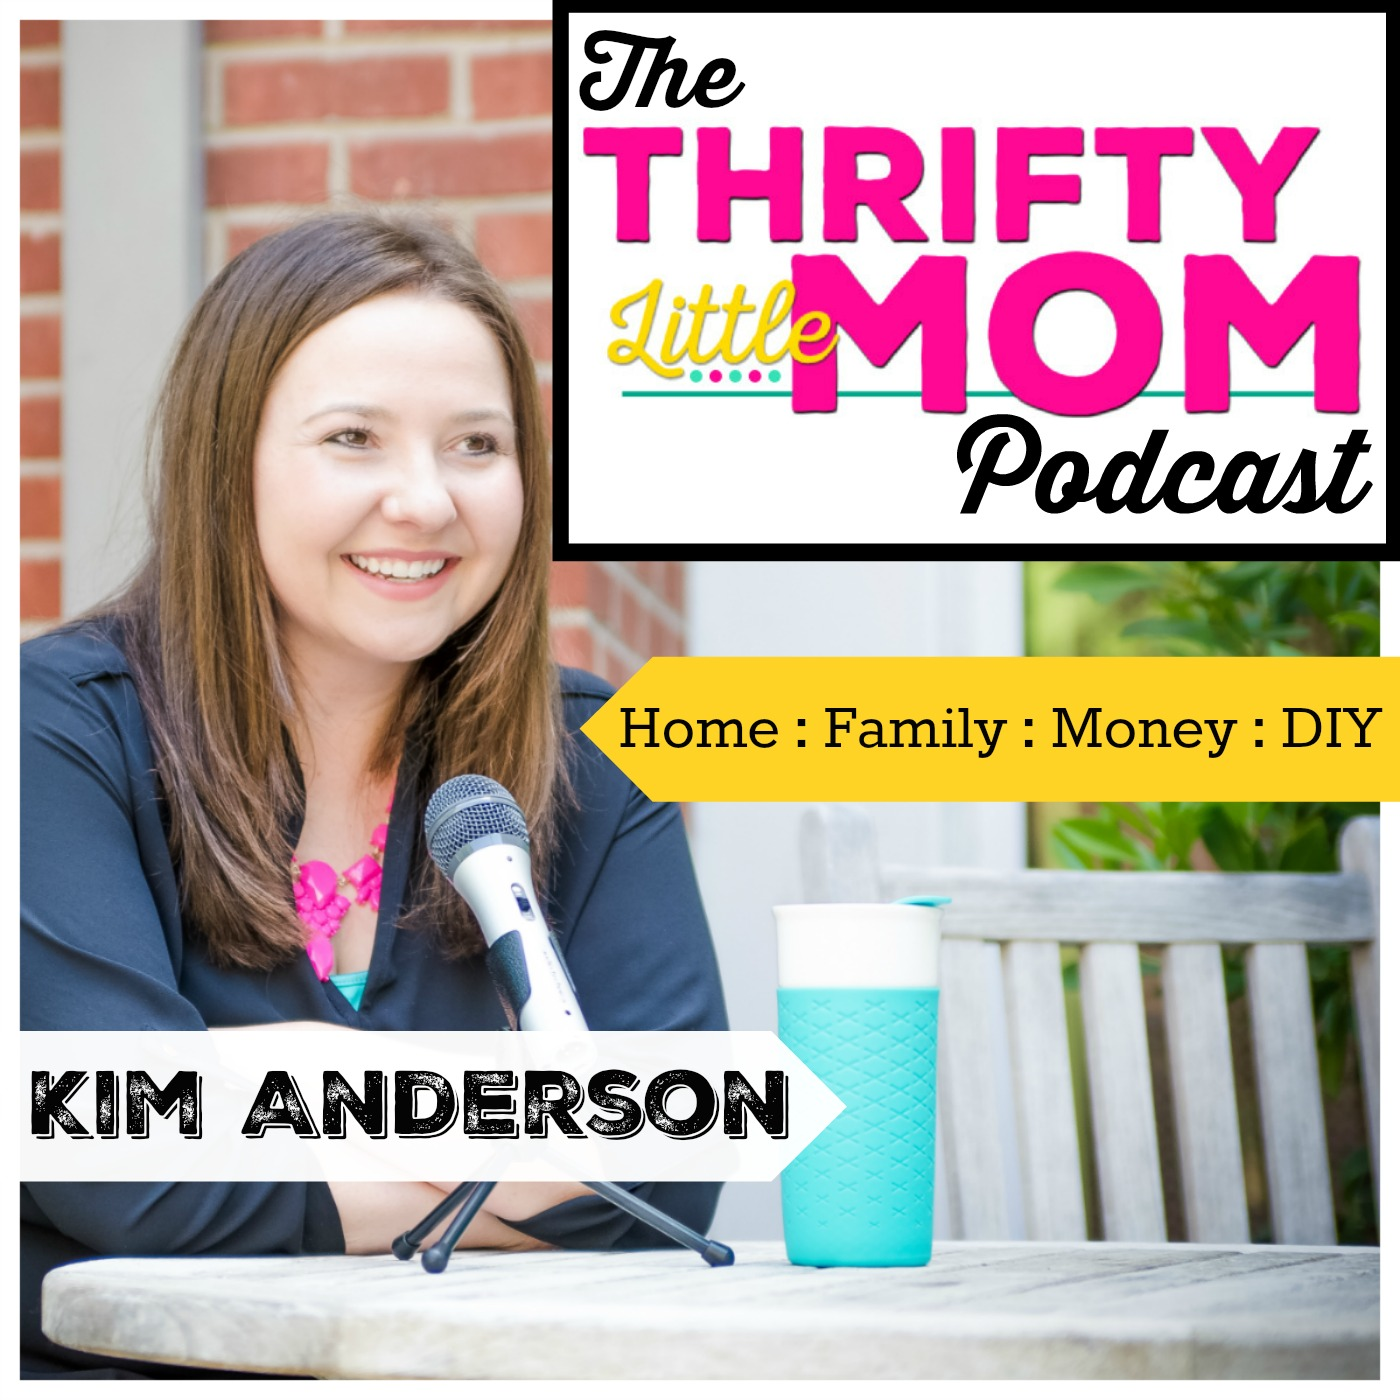 The Thrifty Little Mom Podcast